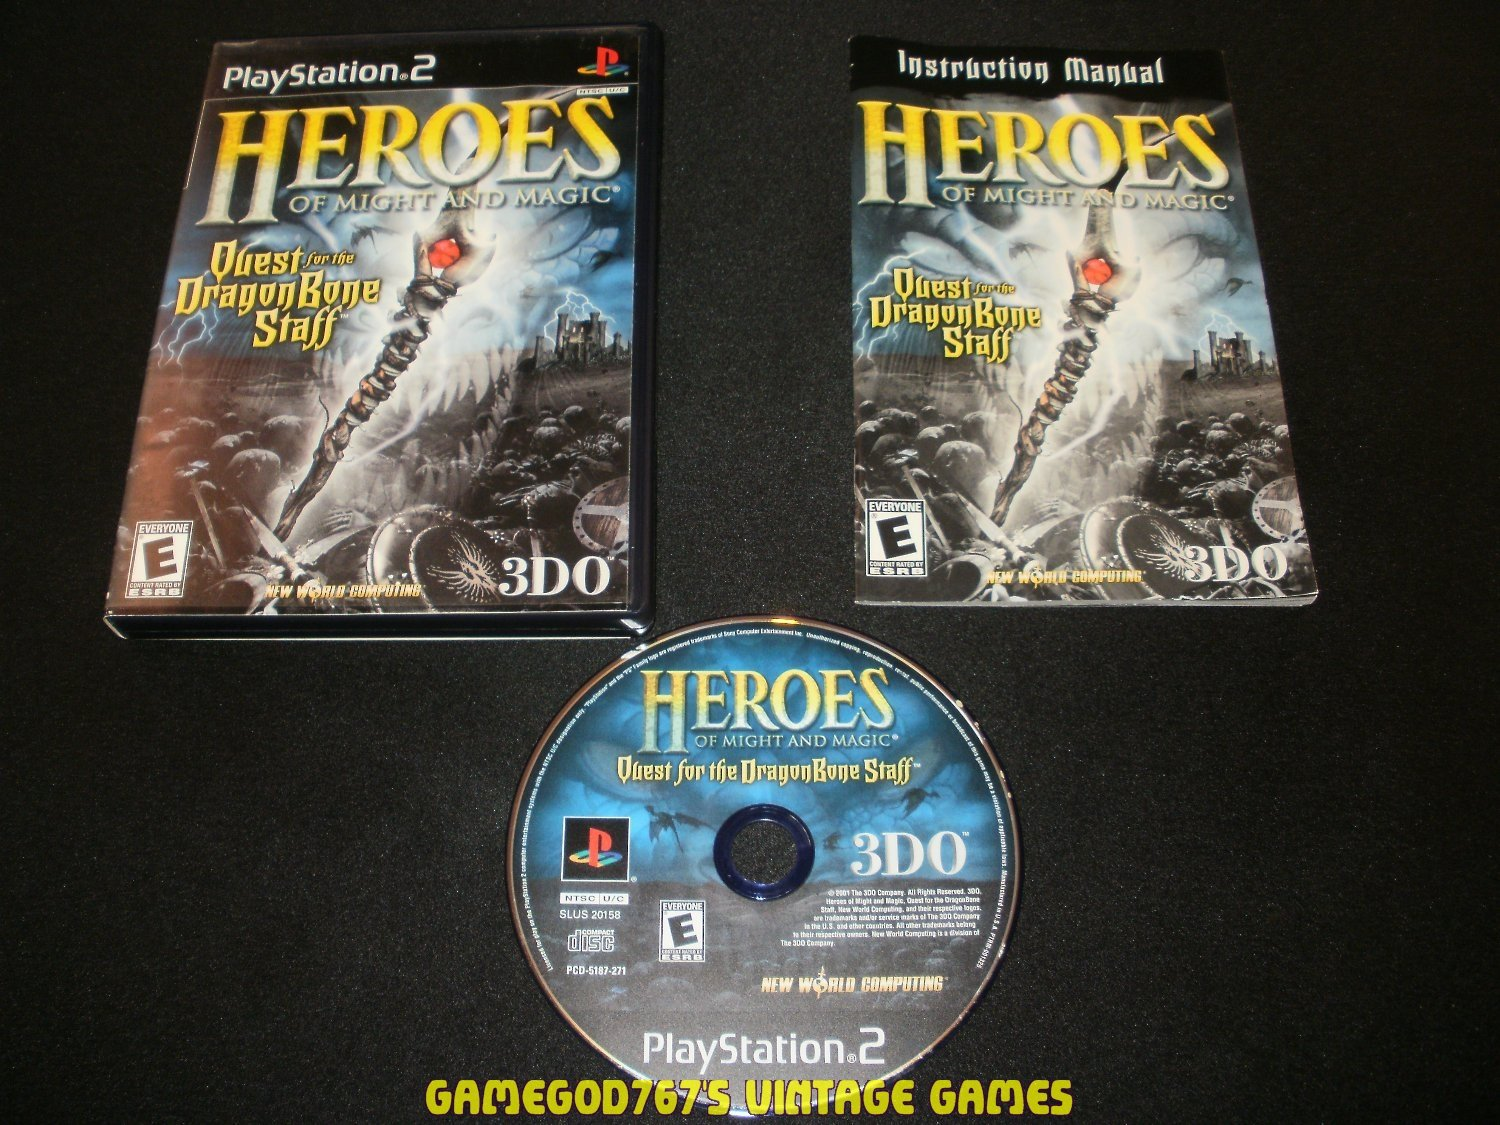 Heroes of Might and Magic - Sony PS2 - Complete CIB